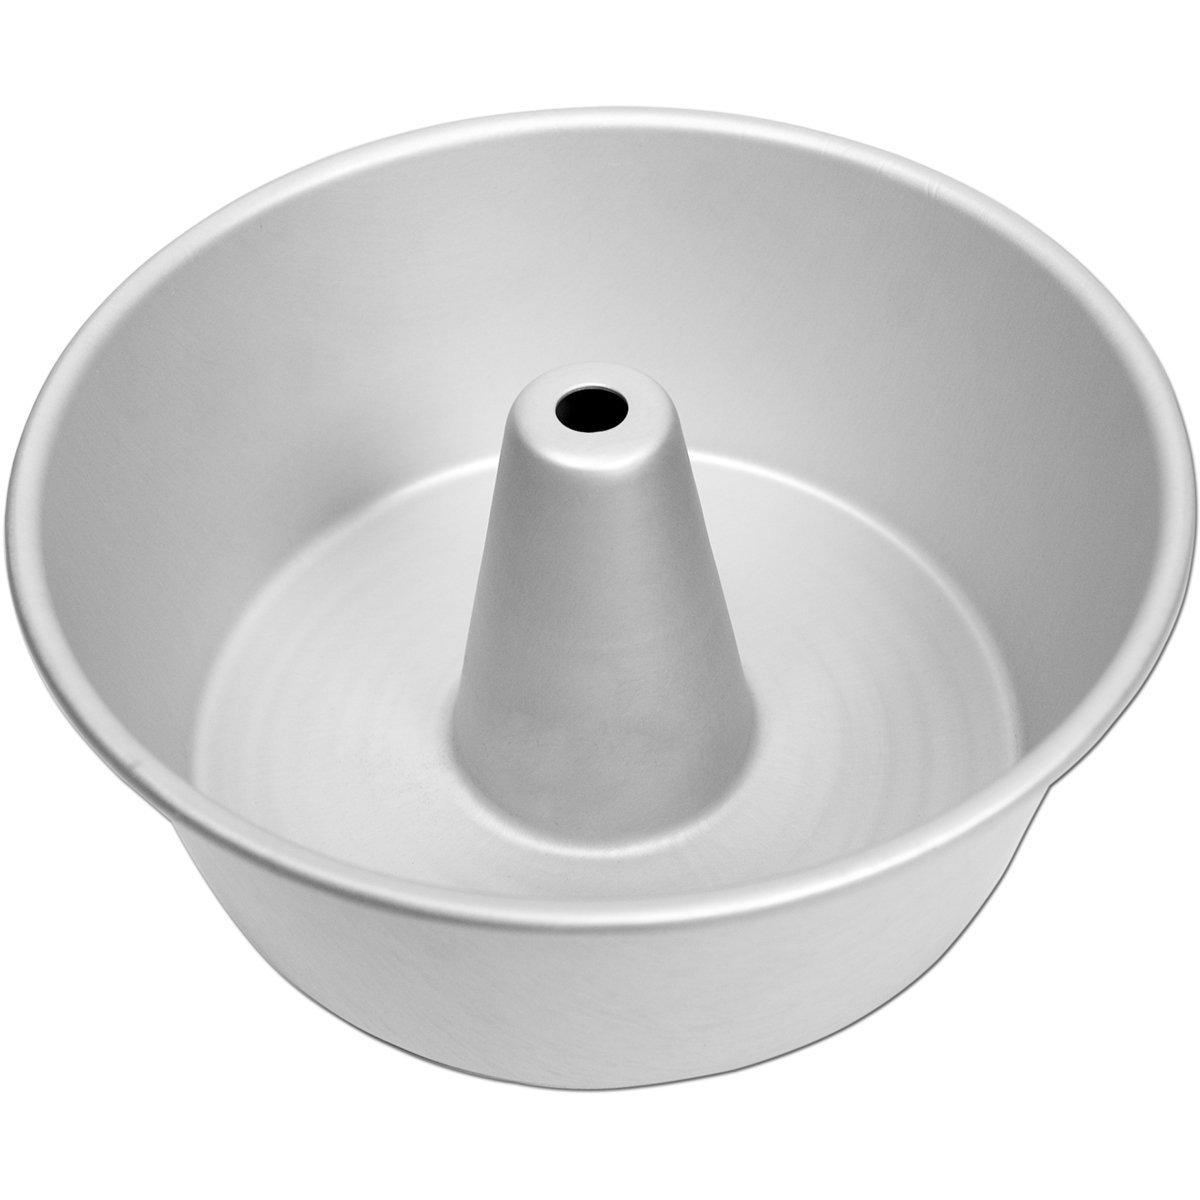 Fat Daddio's PAF-10425 ProSeries Anodized Aluminum Angel Food Cake Pan 10 x 4.25 Inch Silver